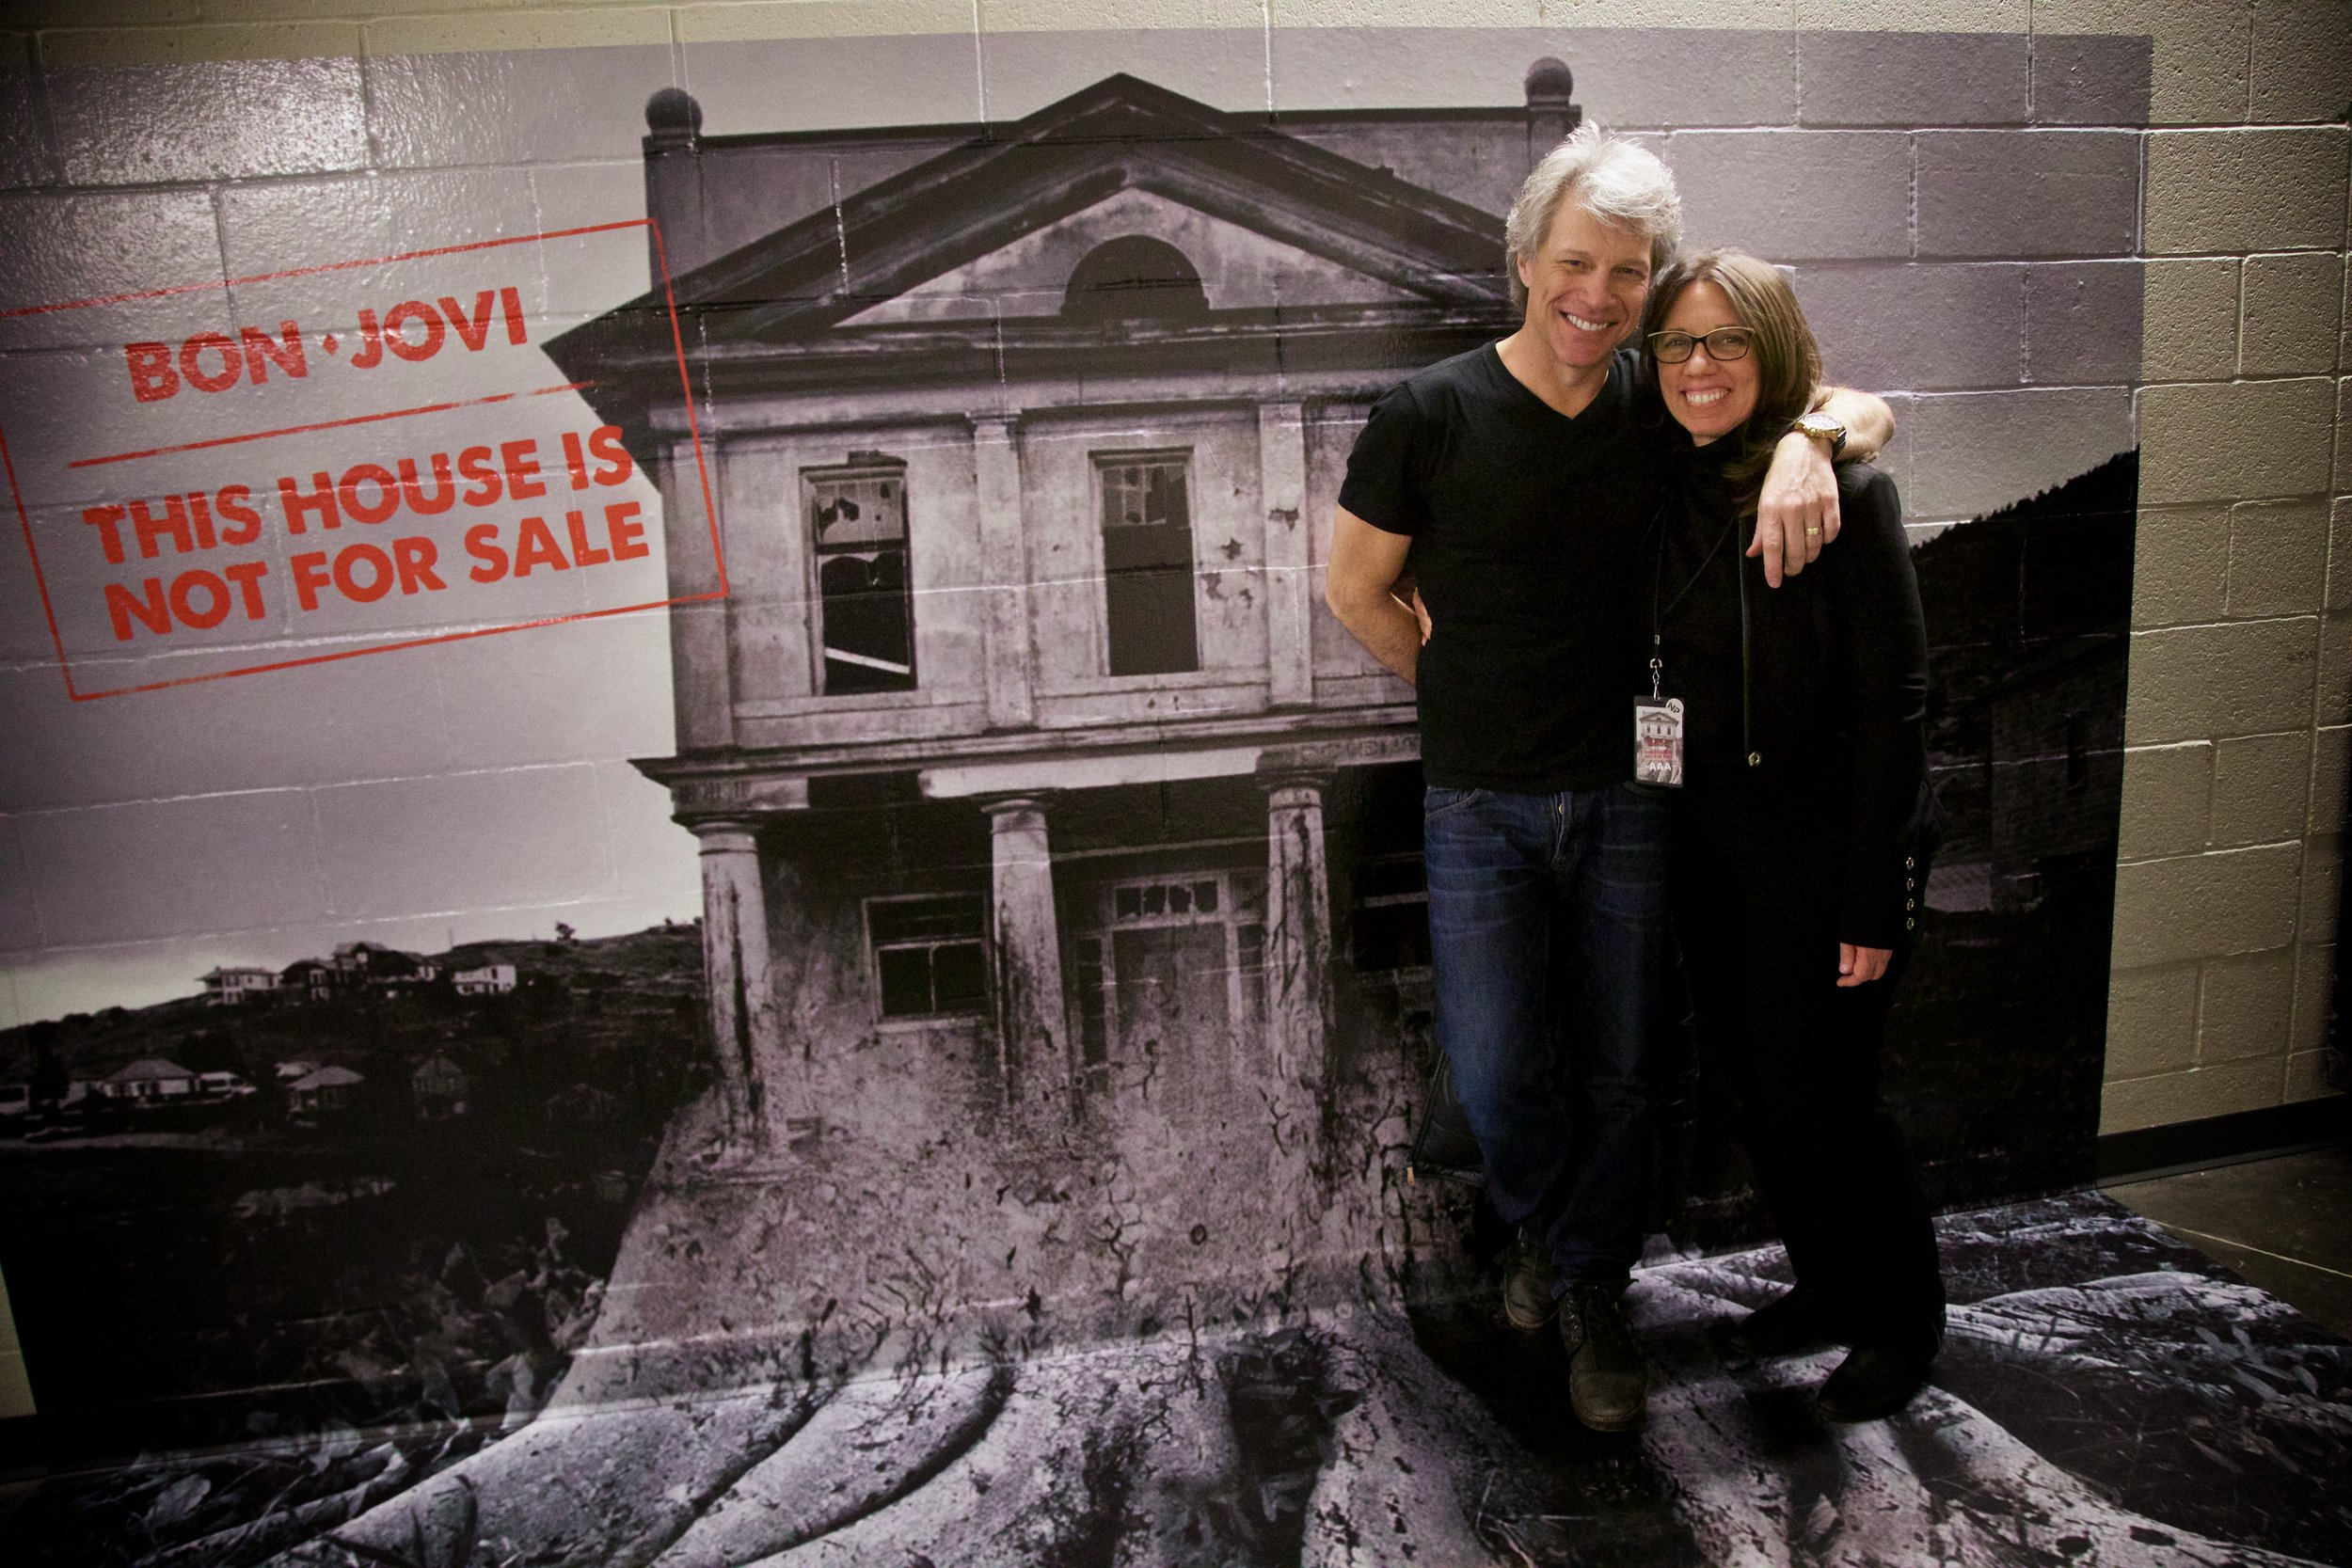 """In association with    Katie Agresta Vocal Studios   , Mary Jo served as the touring coach for Jon Bon Jovi's 2016 Listening Tour, and both the 2017 and 2018 U.S., South American, and Pan Asian Tours for his latest album """"This House is Not For Sale."""" Her work with the band is celebrated in Bon Jovi's most current book """"This House is Not For Sale"""" which chronicles the band's triumphant 2017 tour."""